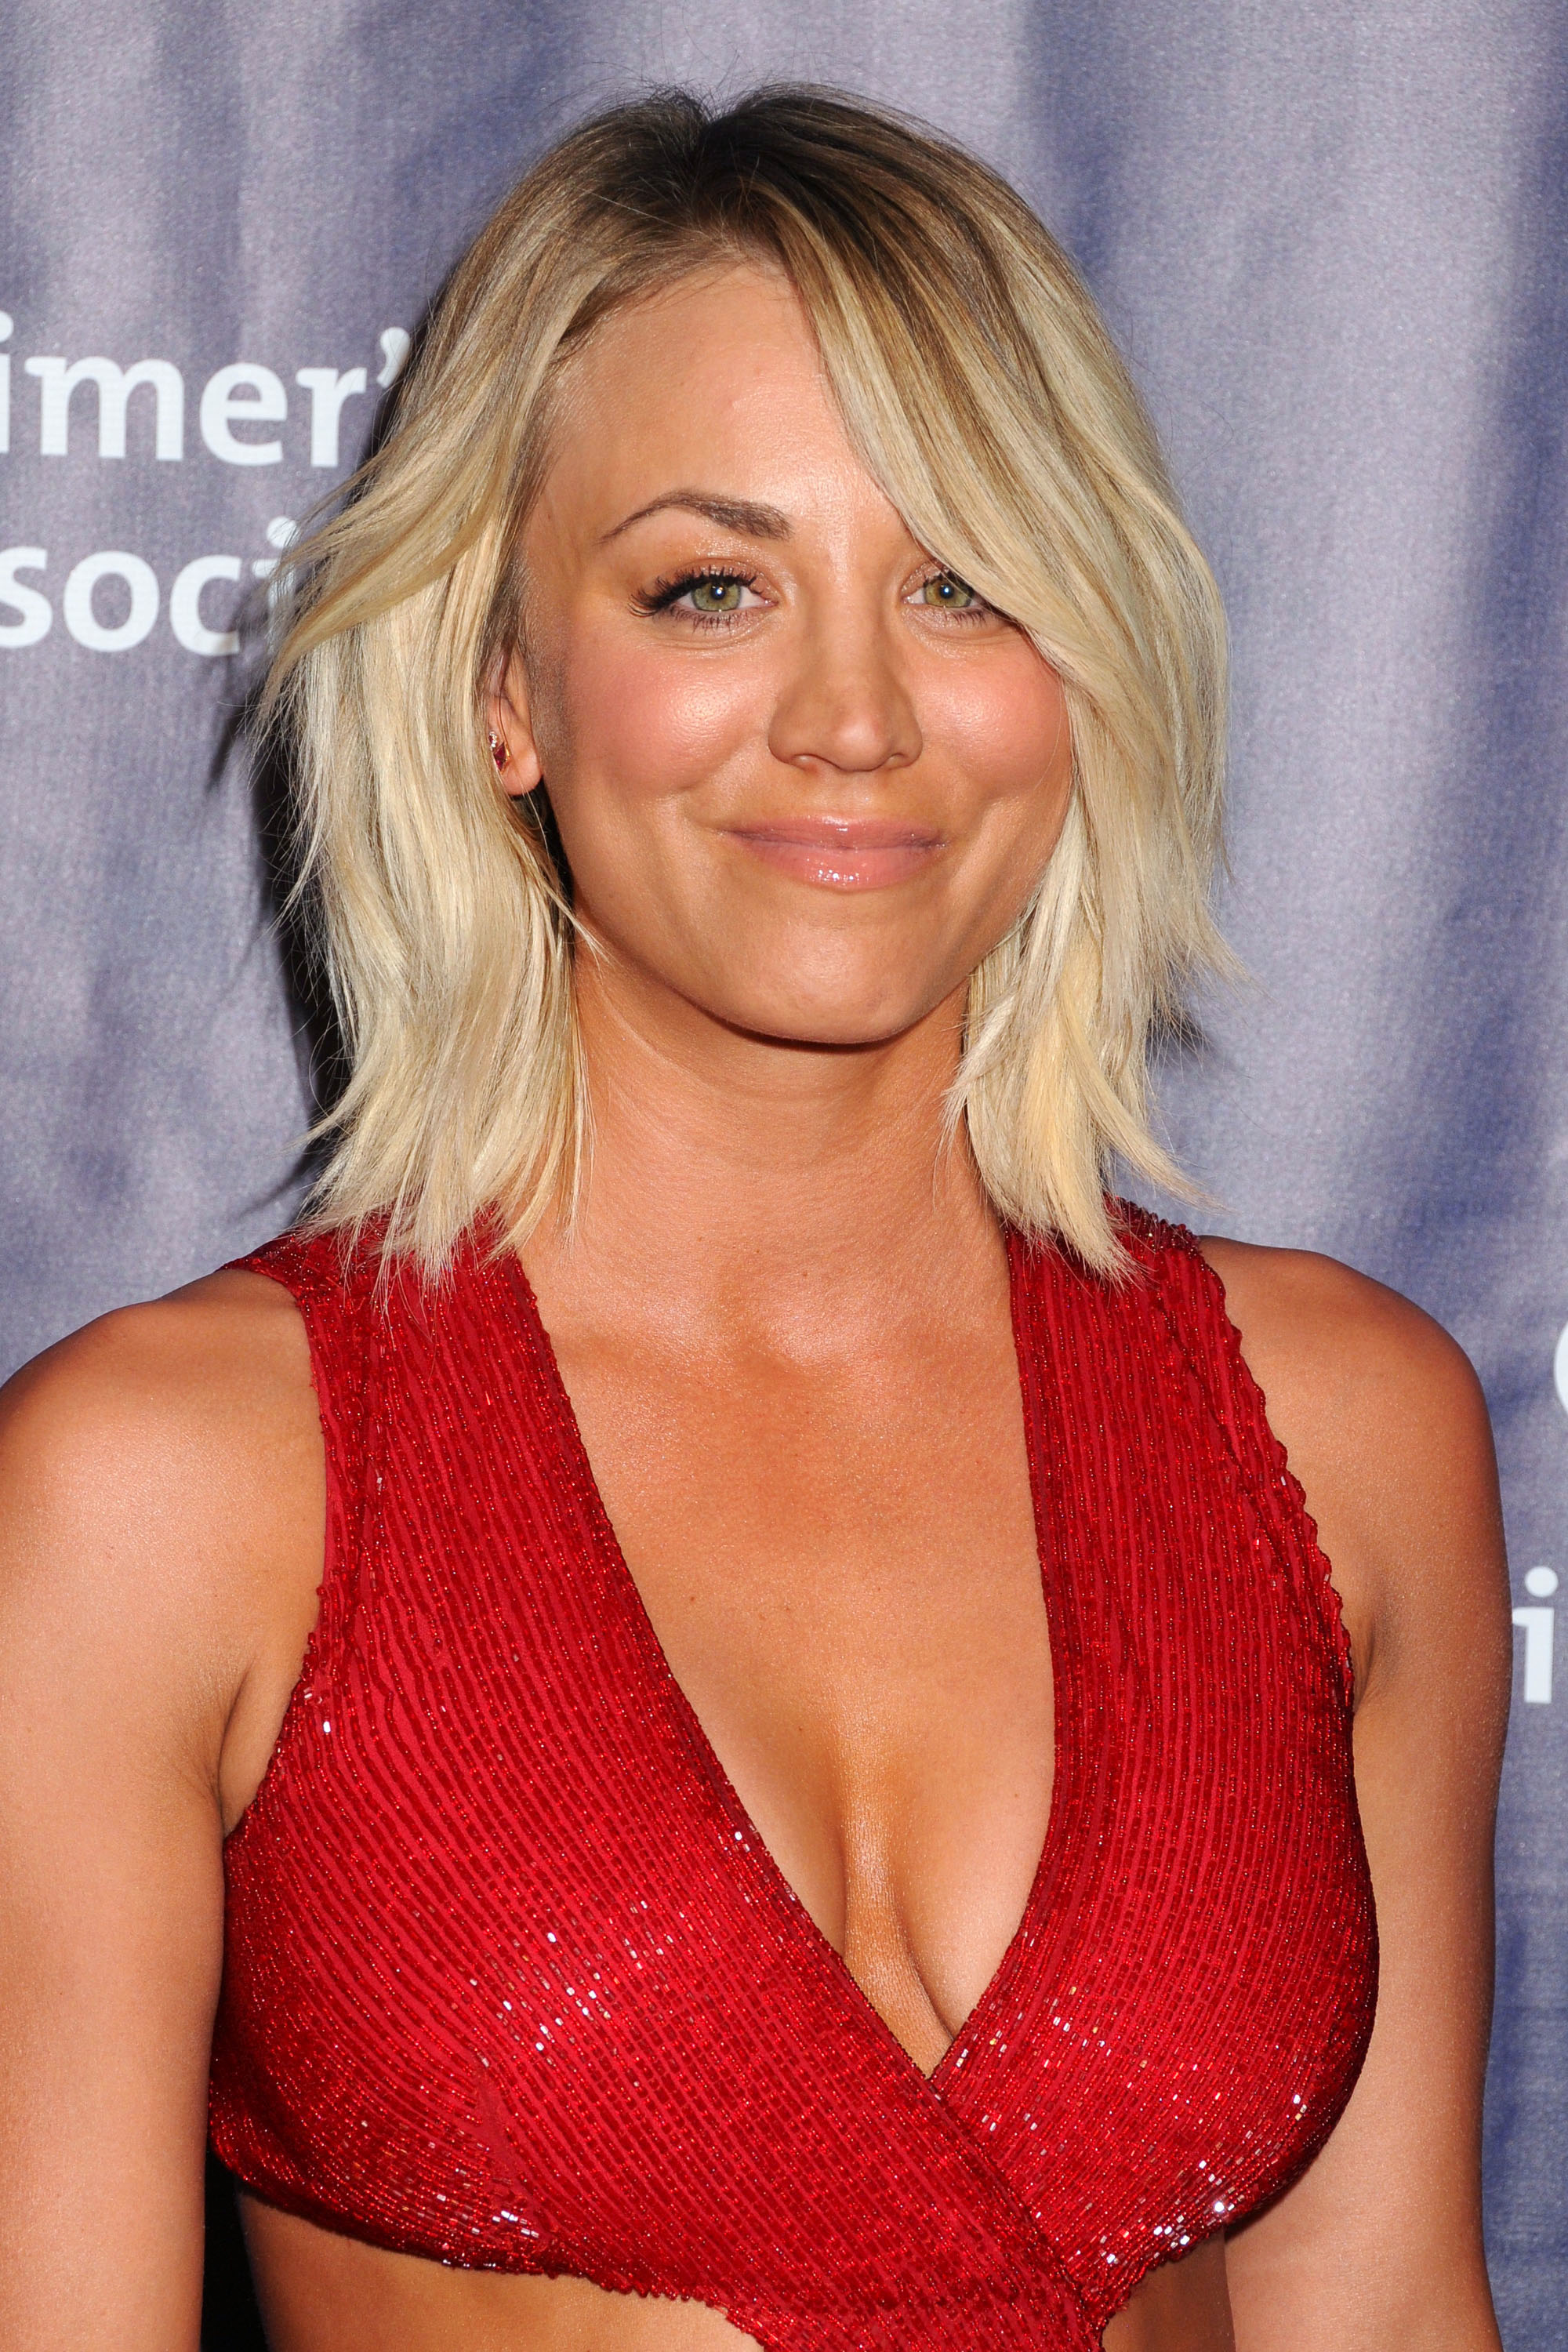 Busty Blonde Celeb Kaley Cuoco Teasing with Her Shapely